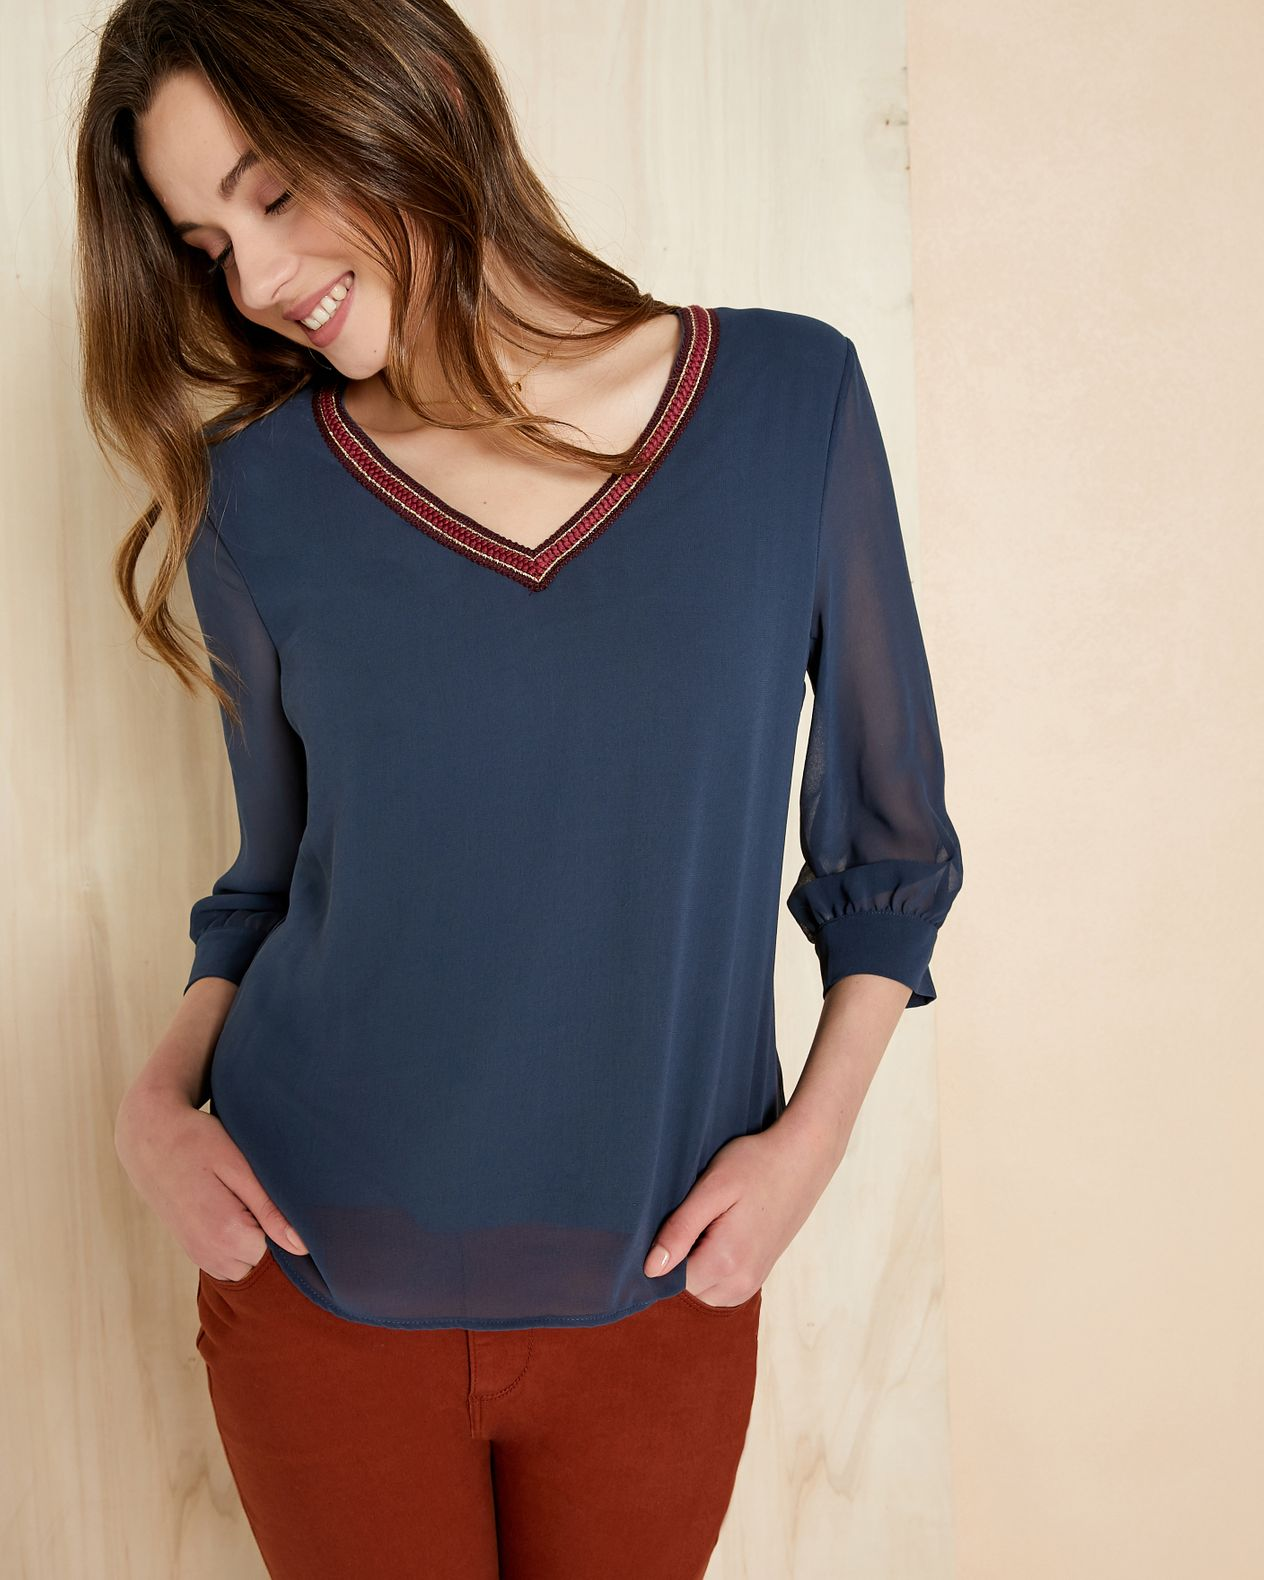 Blouse femme voile col V sporty chic